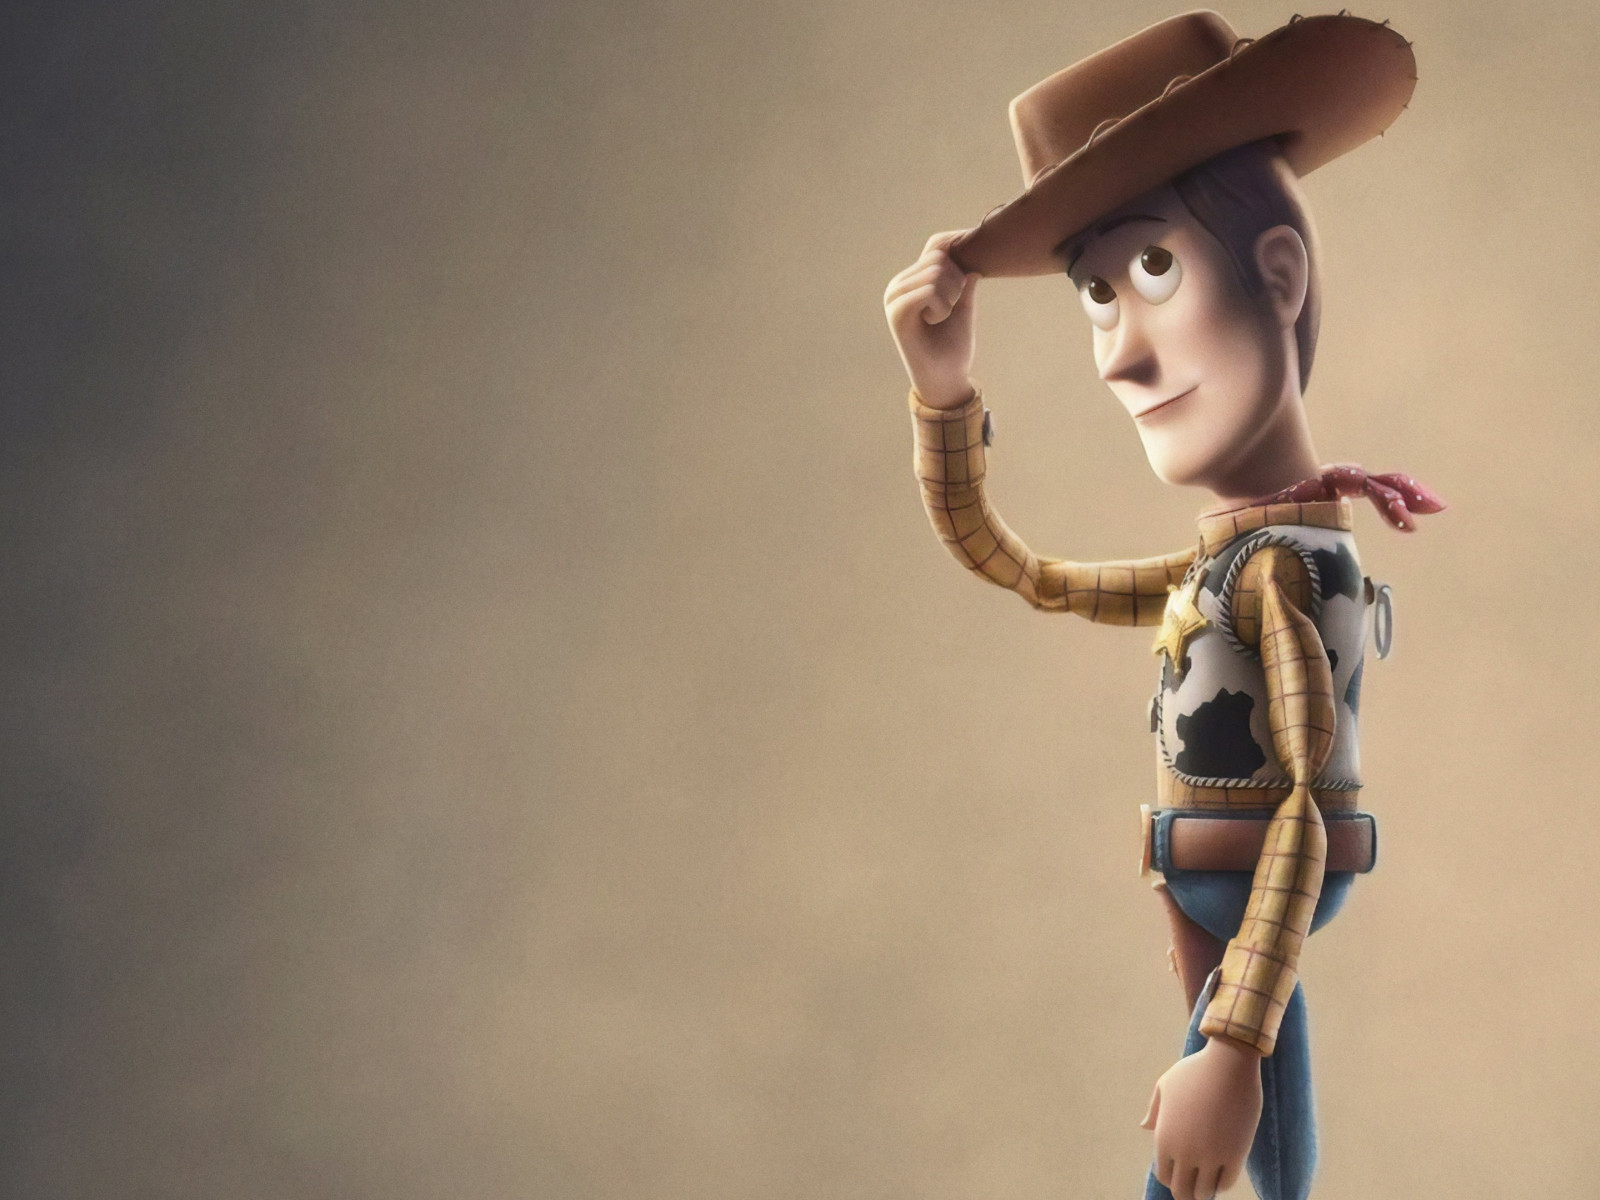 Toy Story 4 wallpaper 1600x1200